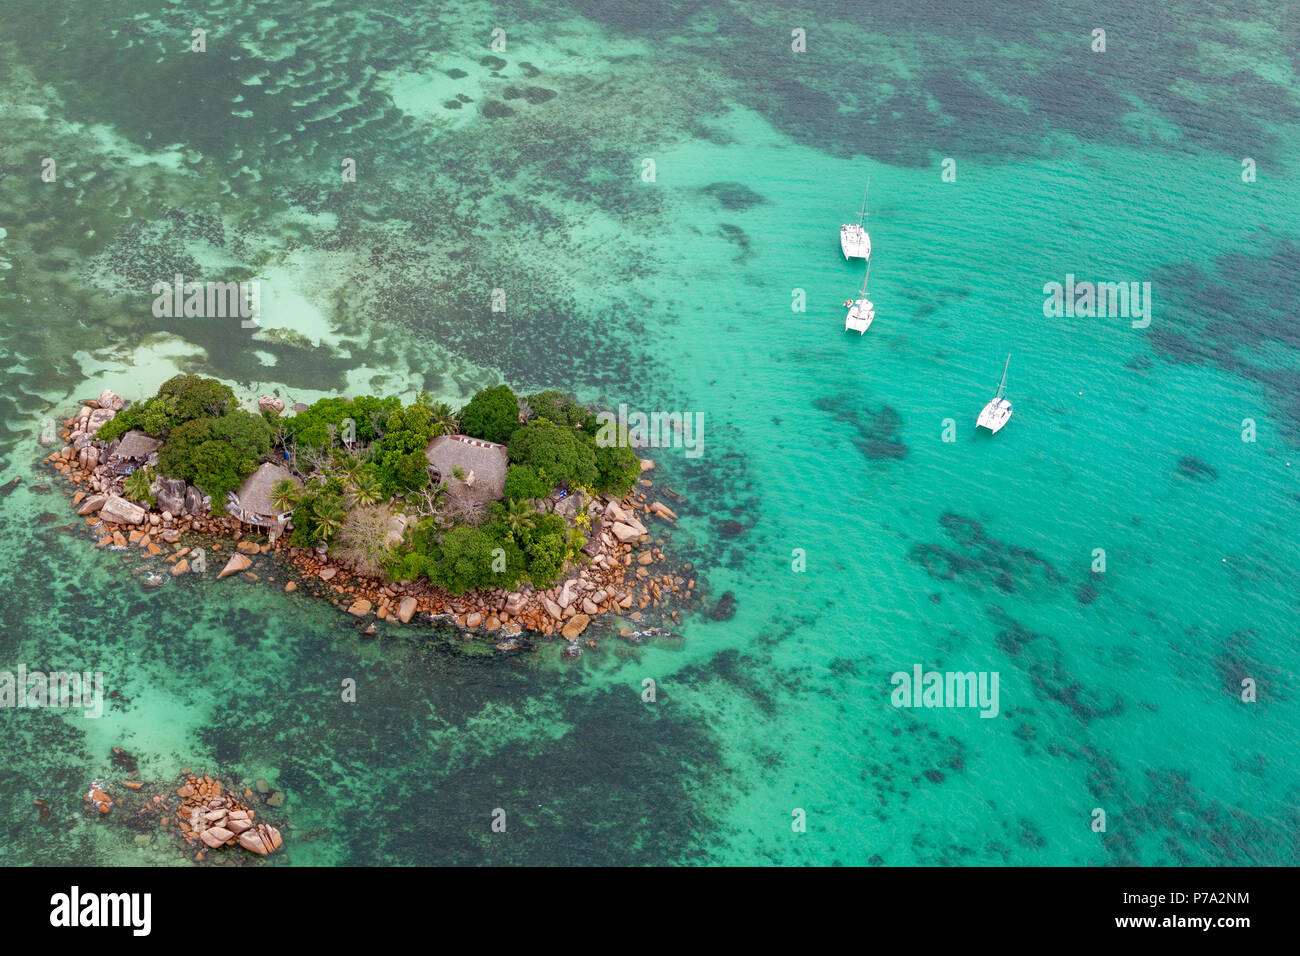 Aerial view of the small island Chauve Souris near Praslin, Seychelles in the Indian Ocean. Stock Photo